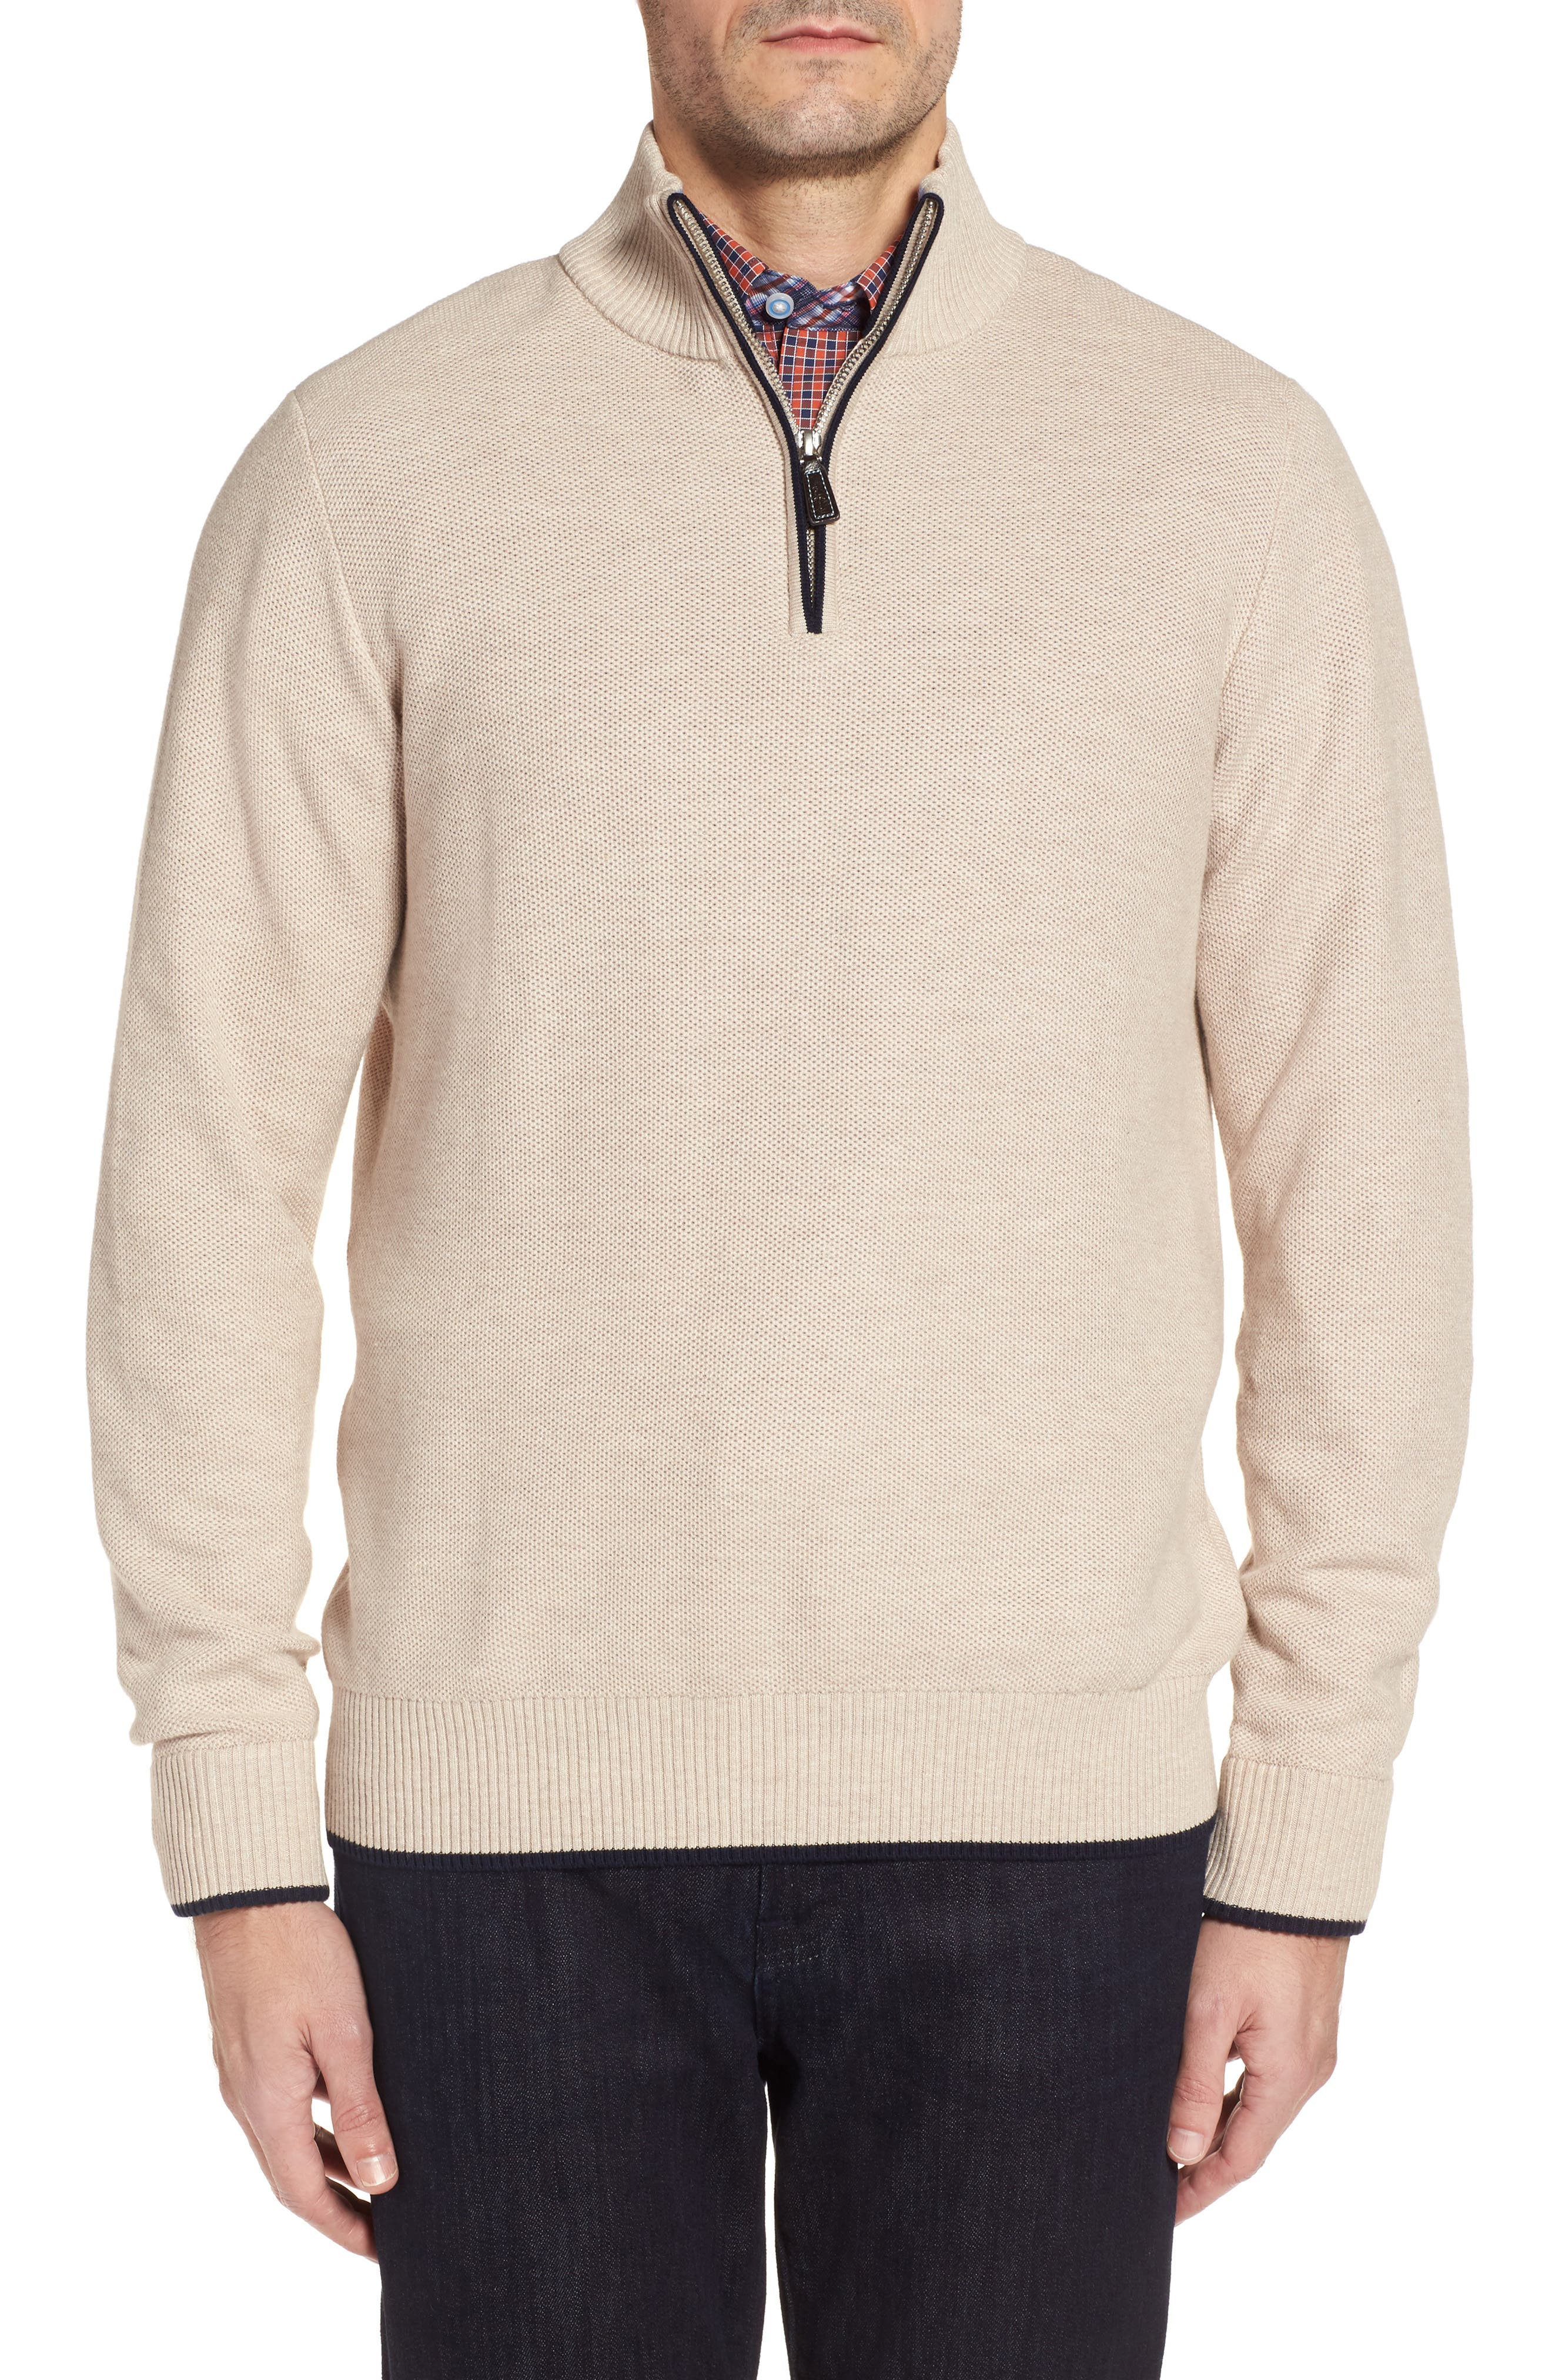 Sikes Tipped Quarter Zip Sweater,                         Main,                         color, Oatmeal